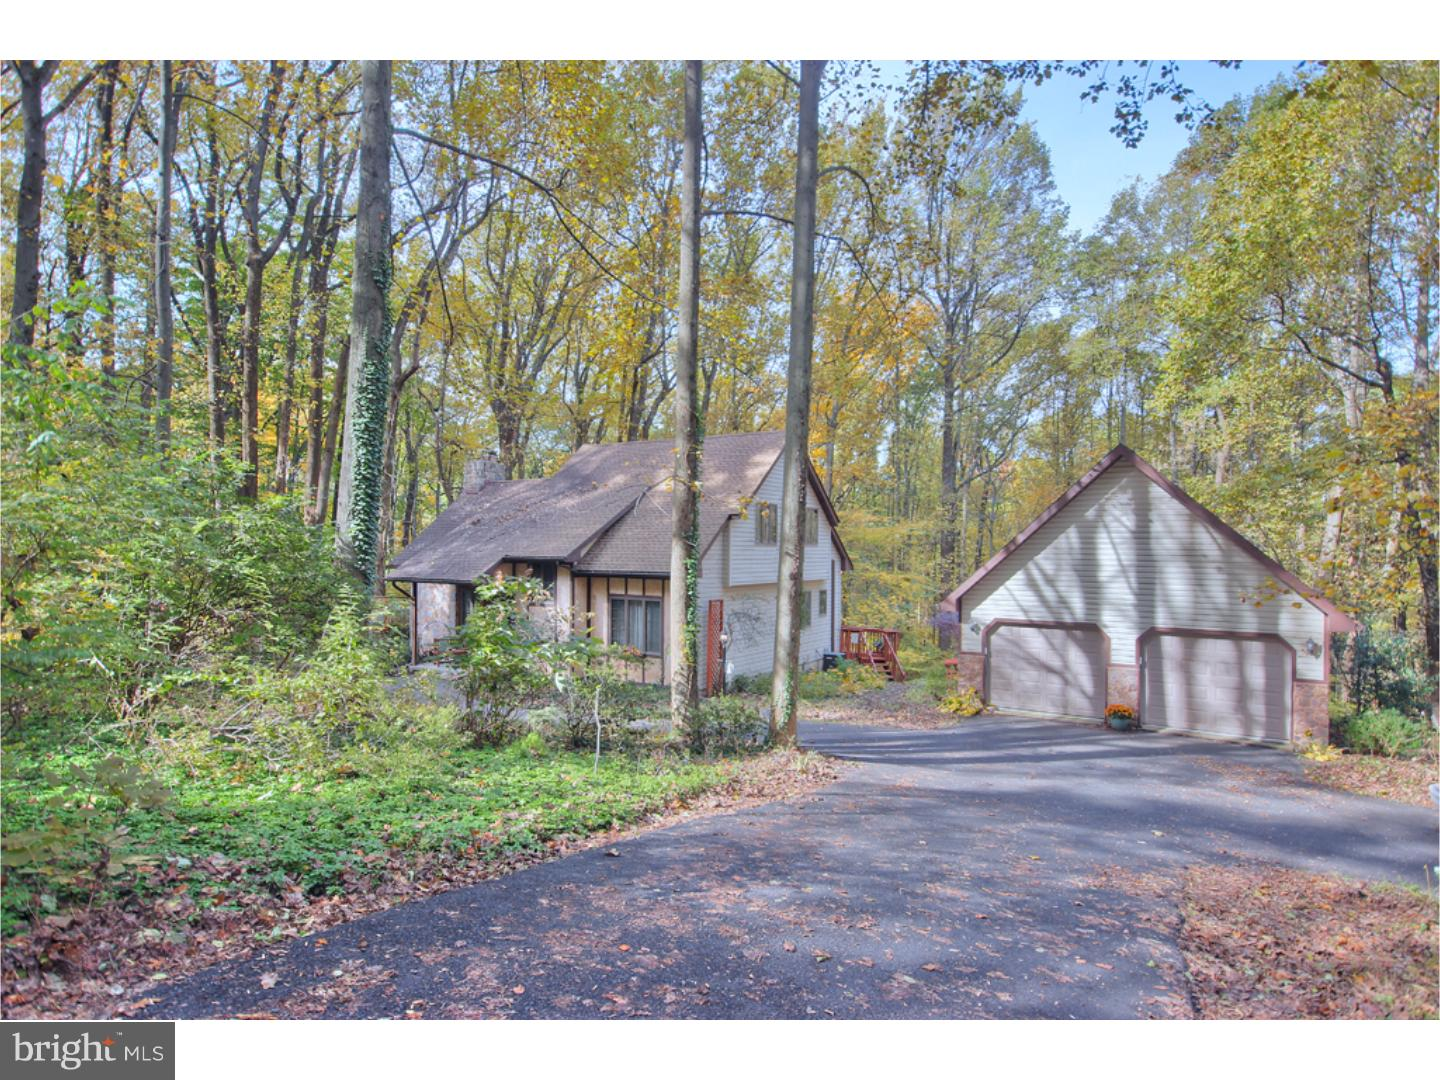 5253 SPRING DRIVE, CENTER VALLEY, PA 18034